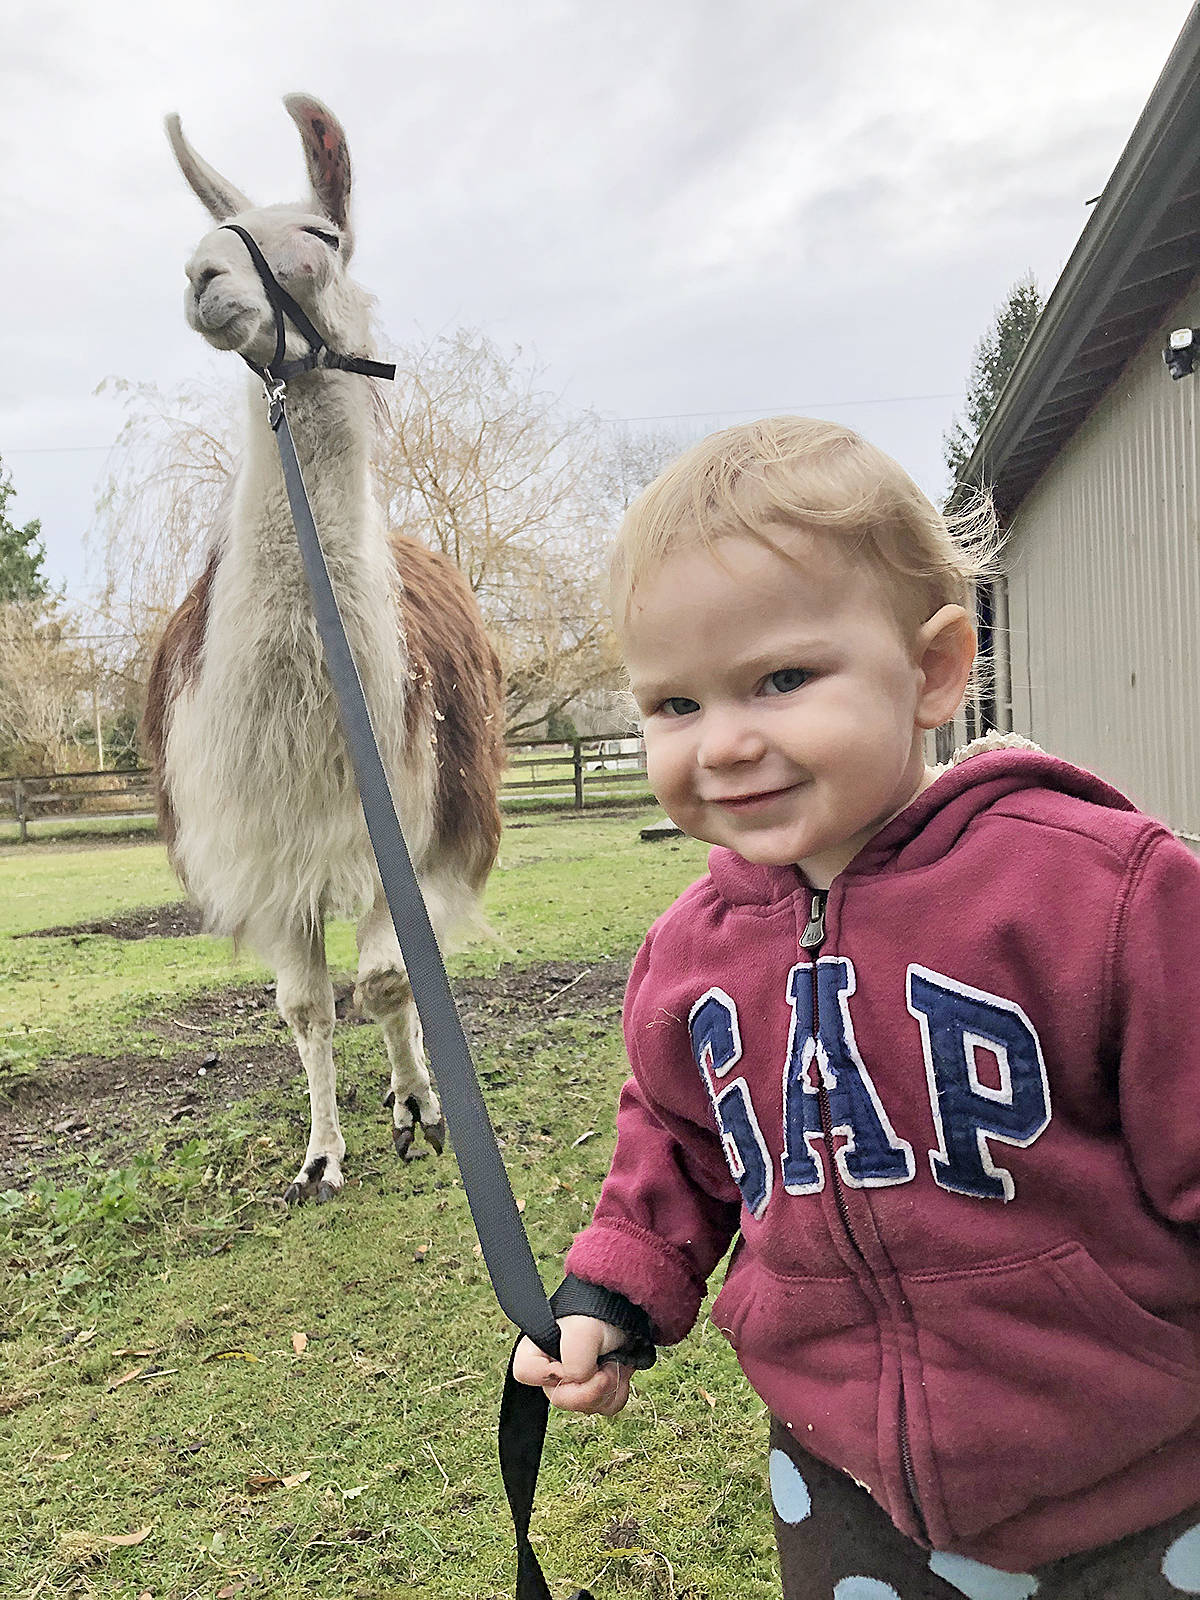 Daisy the llama allows herself to be led by one-year-old Porter Milton. The 15-year-old Daisy is described as surprisingly 'mild-tempered' despite being in pain from an untreated abscess. She was taken in by Kensington Prairie Farm in Aldergrove, which has launched an online fundraiser to pay for her surgery. (Kensington Prairie Farm/Special to Langley Advance Times)